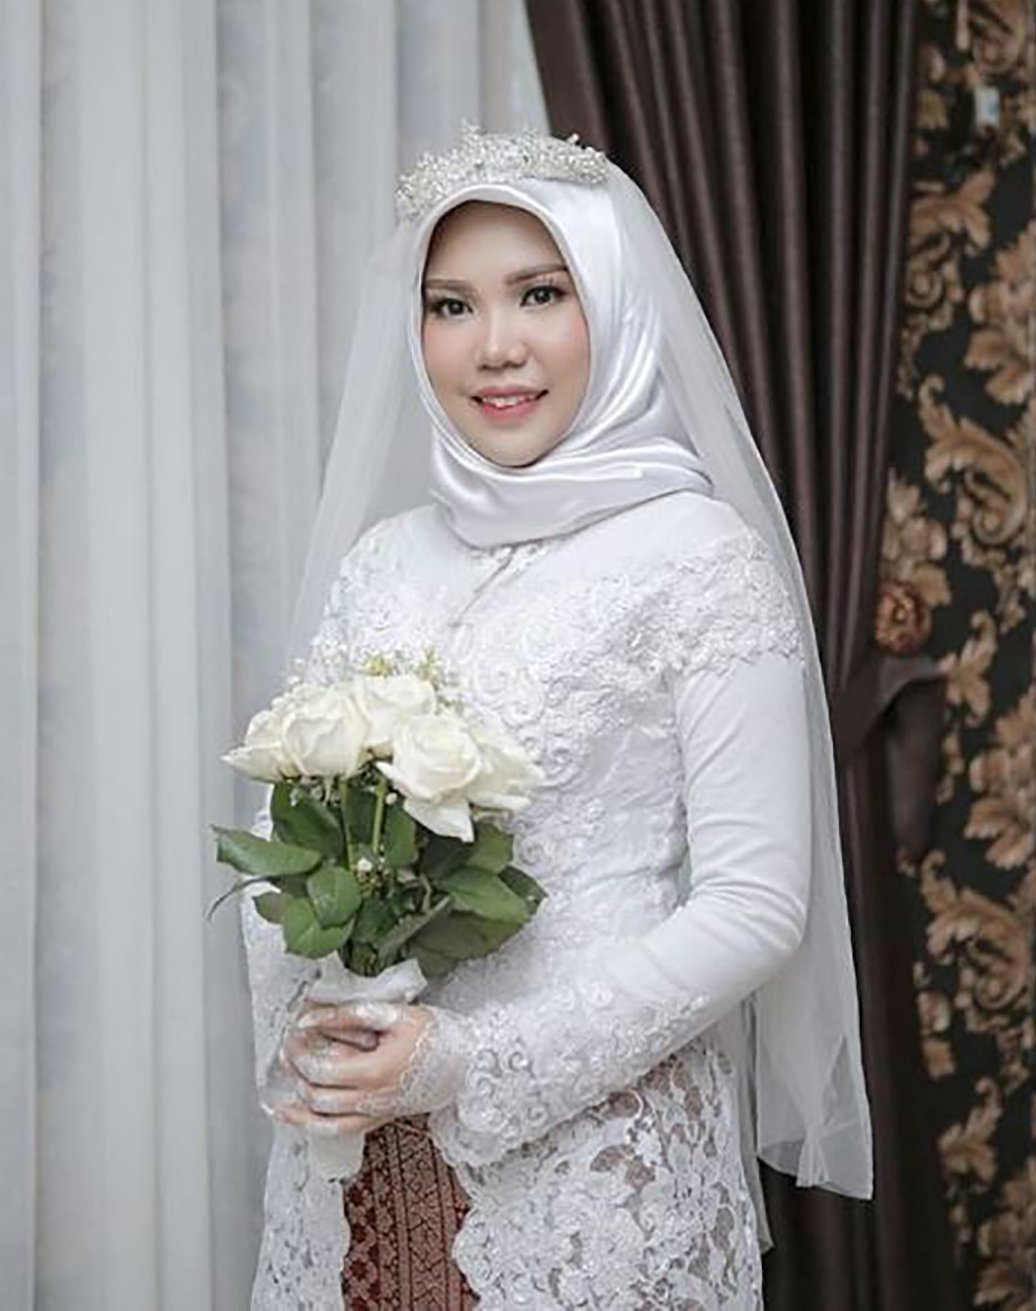 METRO GRAB VIA INSTAGRAM Intan Syari and Rio Nanda Pratama were due to get married on 11 November. But Mr Pratama died as he was coming home for the wedding, when Lion Air flight JT 610 crashed on 29 October shortly after taking off from Jakarta. https://www.instagram.com/p/BqGsP2Znm70/